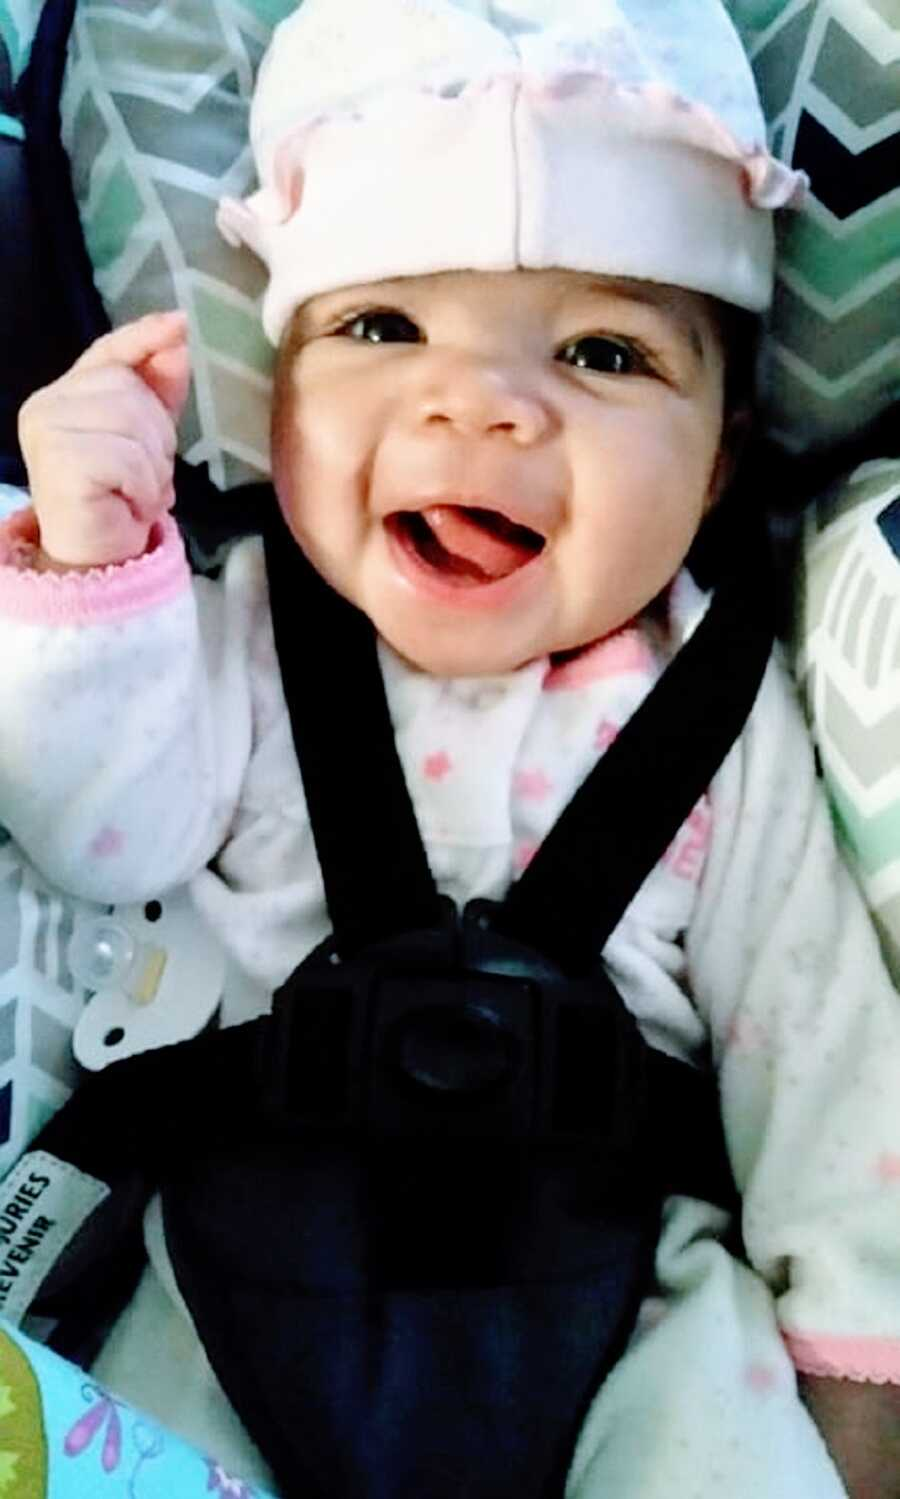 Little girl makes silly face in carseat